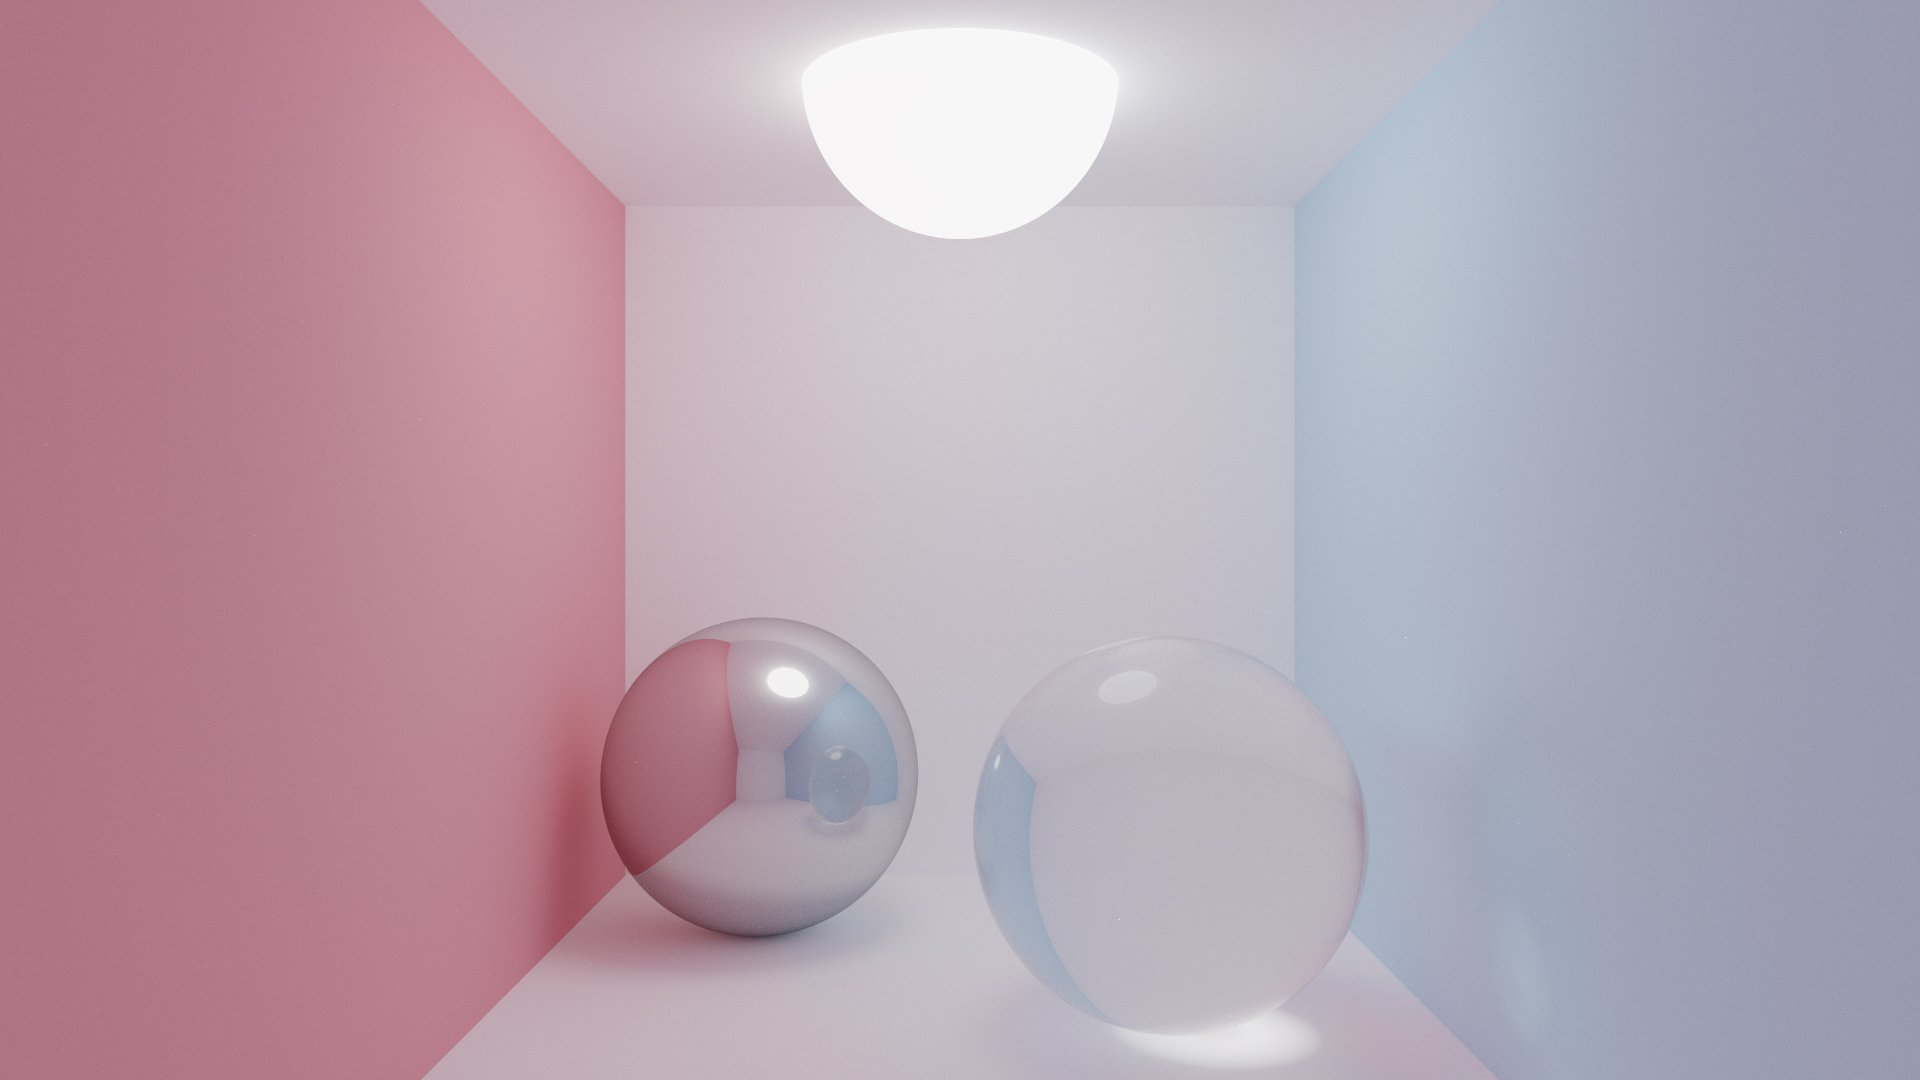 Rendering made with LuxCore Render with Bidirectional Engine